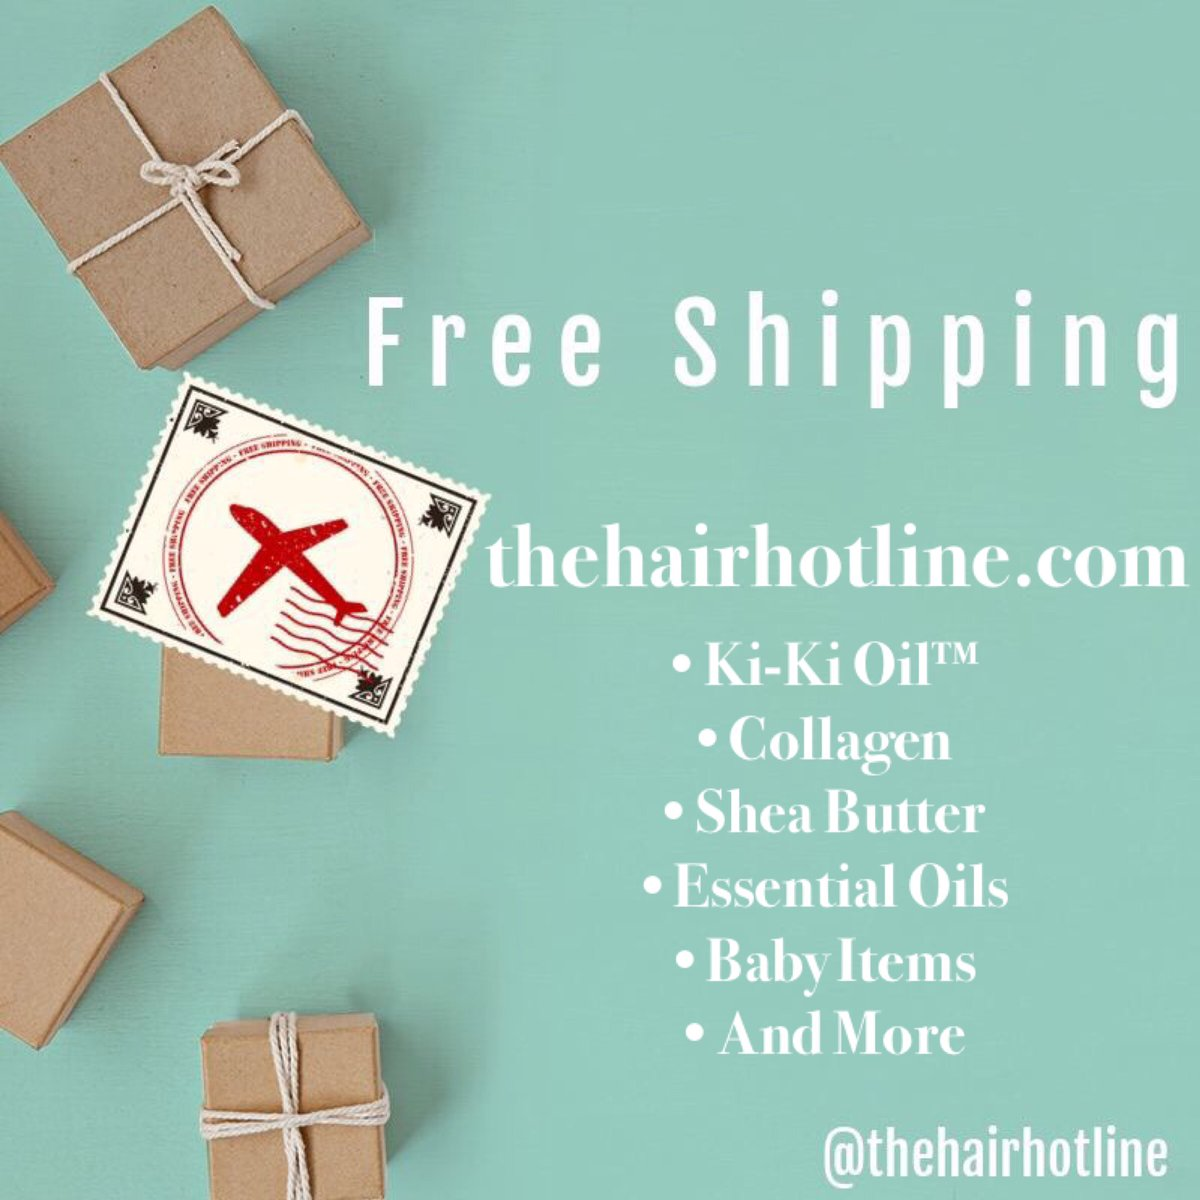 Free Shipping in the US http://thehairhotline.com/shop _________  #KiKiOil #thehairhotline #hairhealth #healthyhair #ulta #haircare #hairpage #hairblog #freeshipping #hairgoals #hairtips #subscribe #subscribenow #blogpost #womeninbusiness #tips #hairtip #collagen #smallbusiness #shopnow